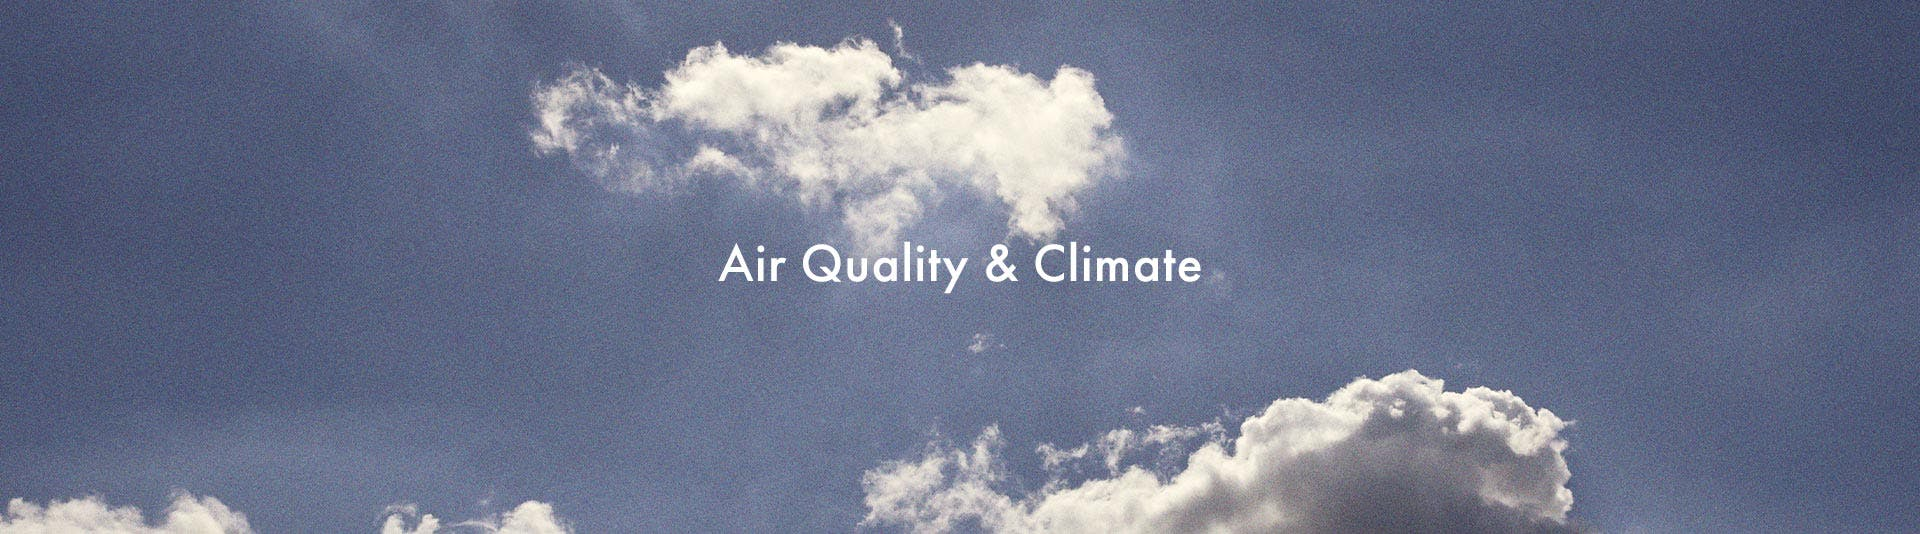 Voltaire air quality and climate top-banner desktop